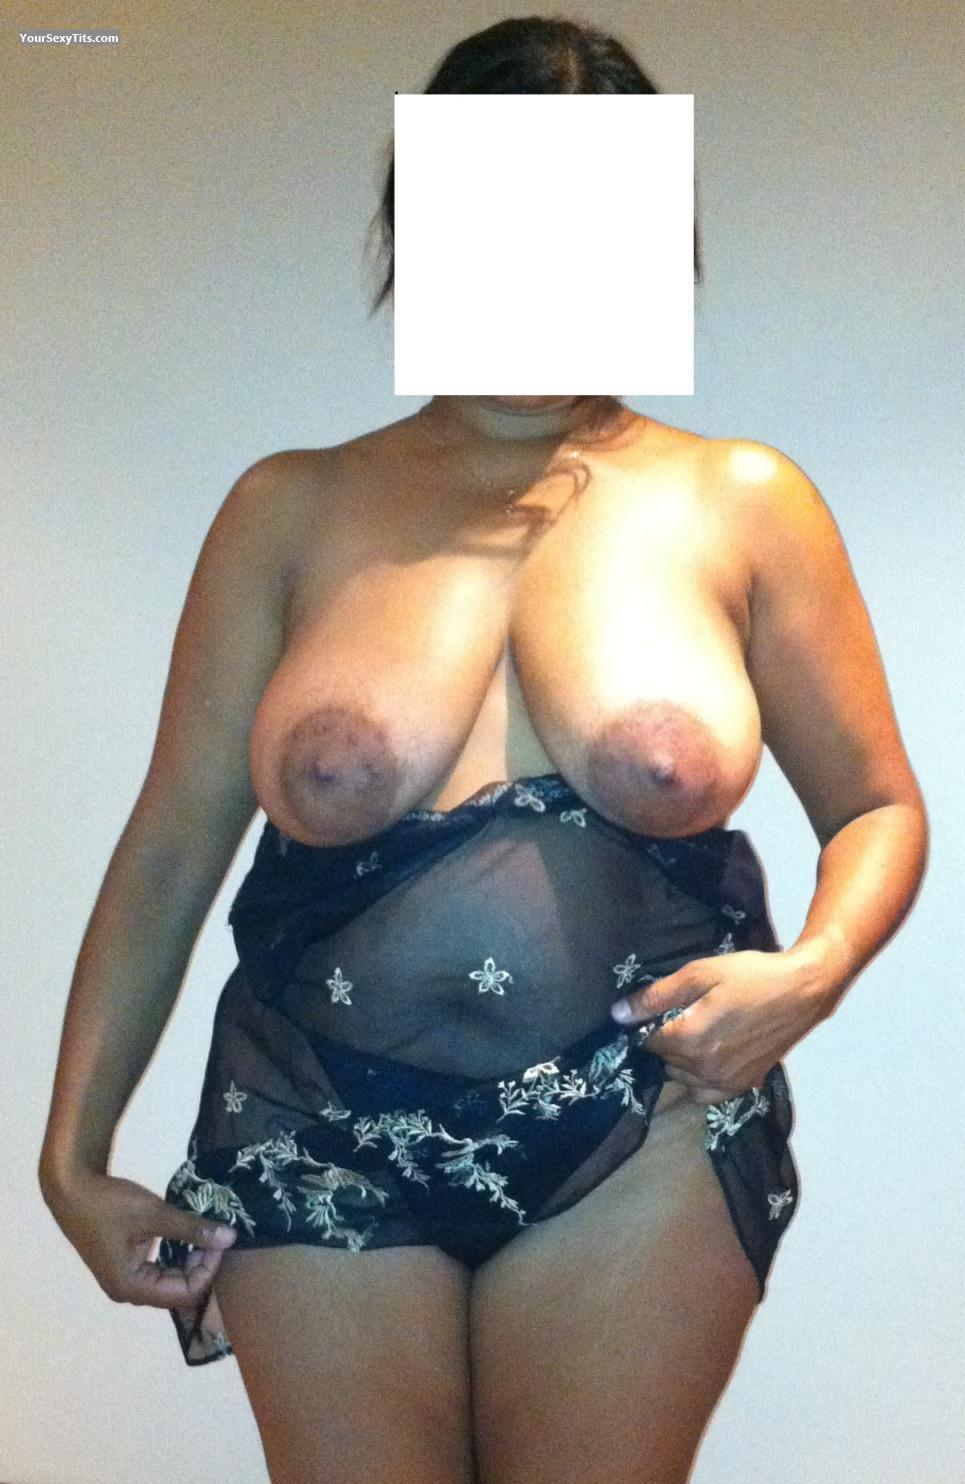 Big Tits Of My Wife SugarNspice